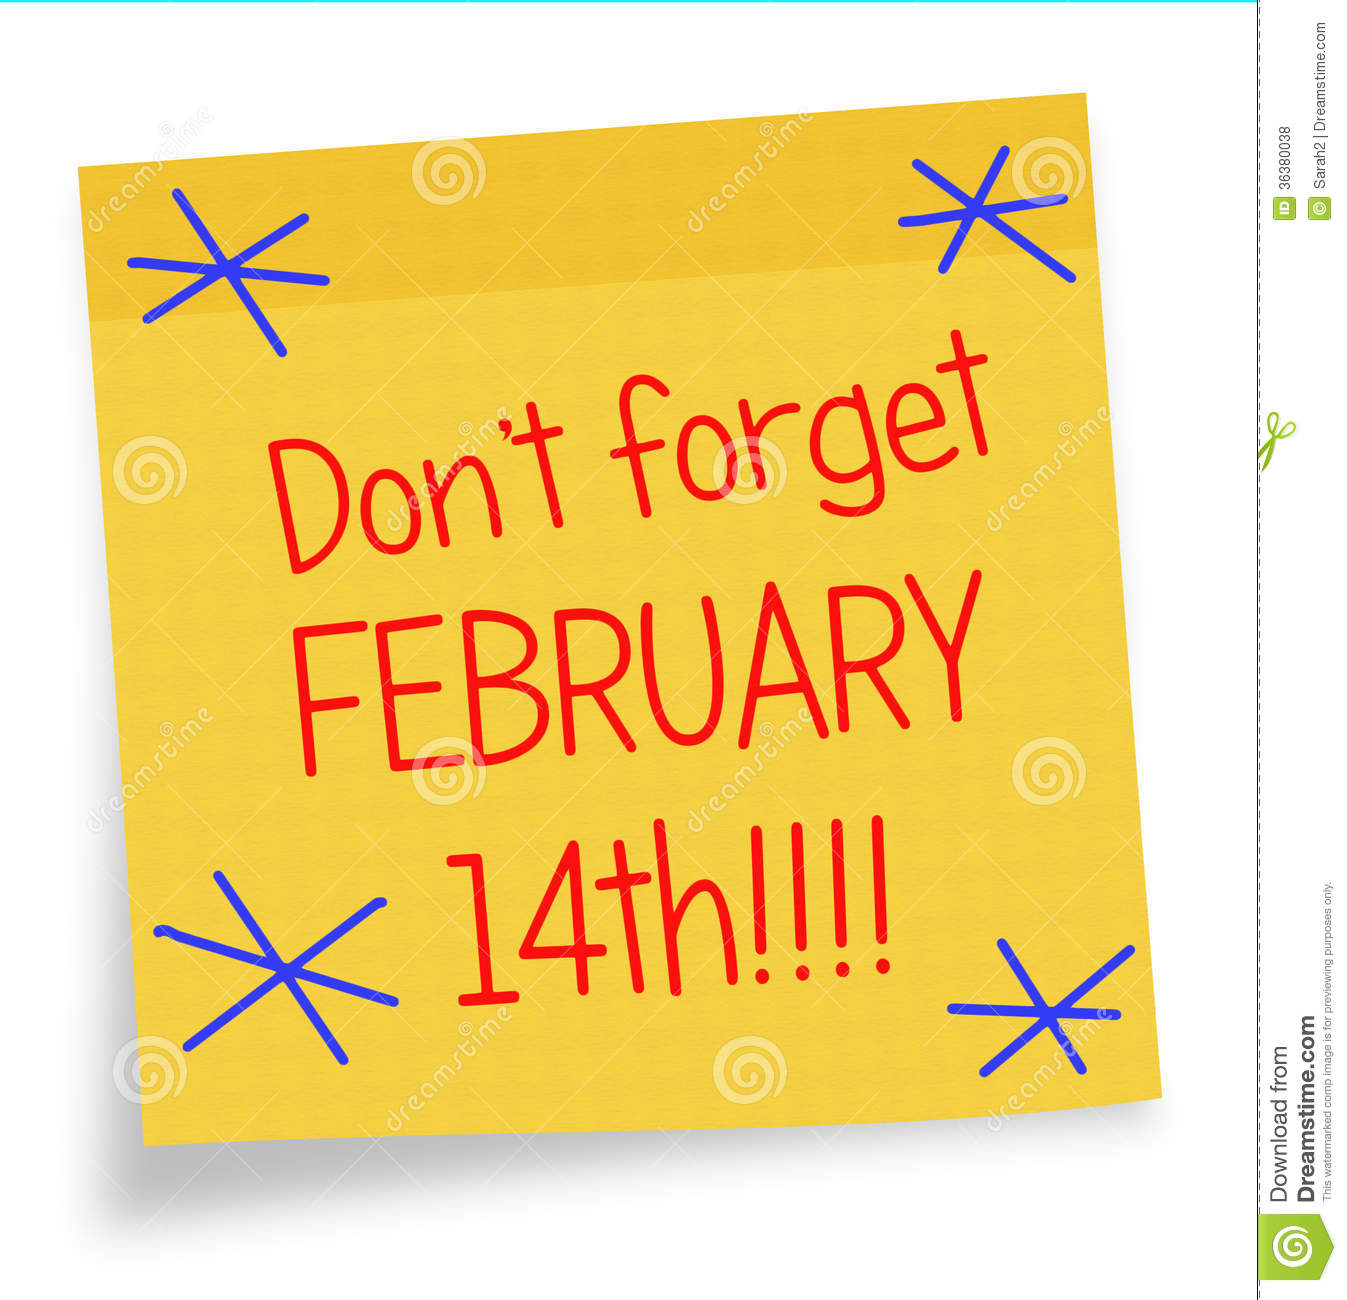 Friendly Reminder Clipart Just a reminder clip art